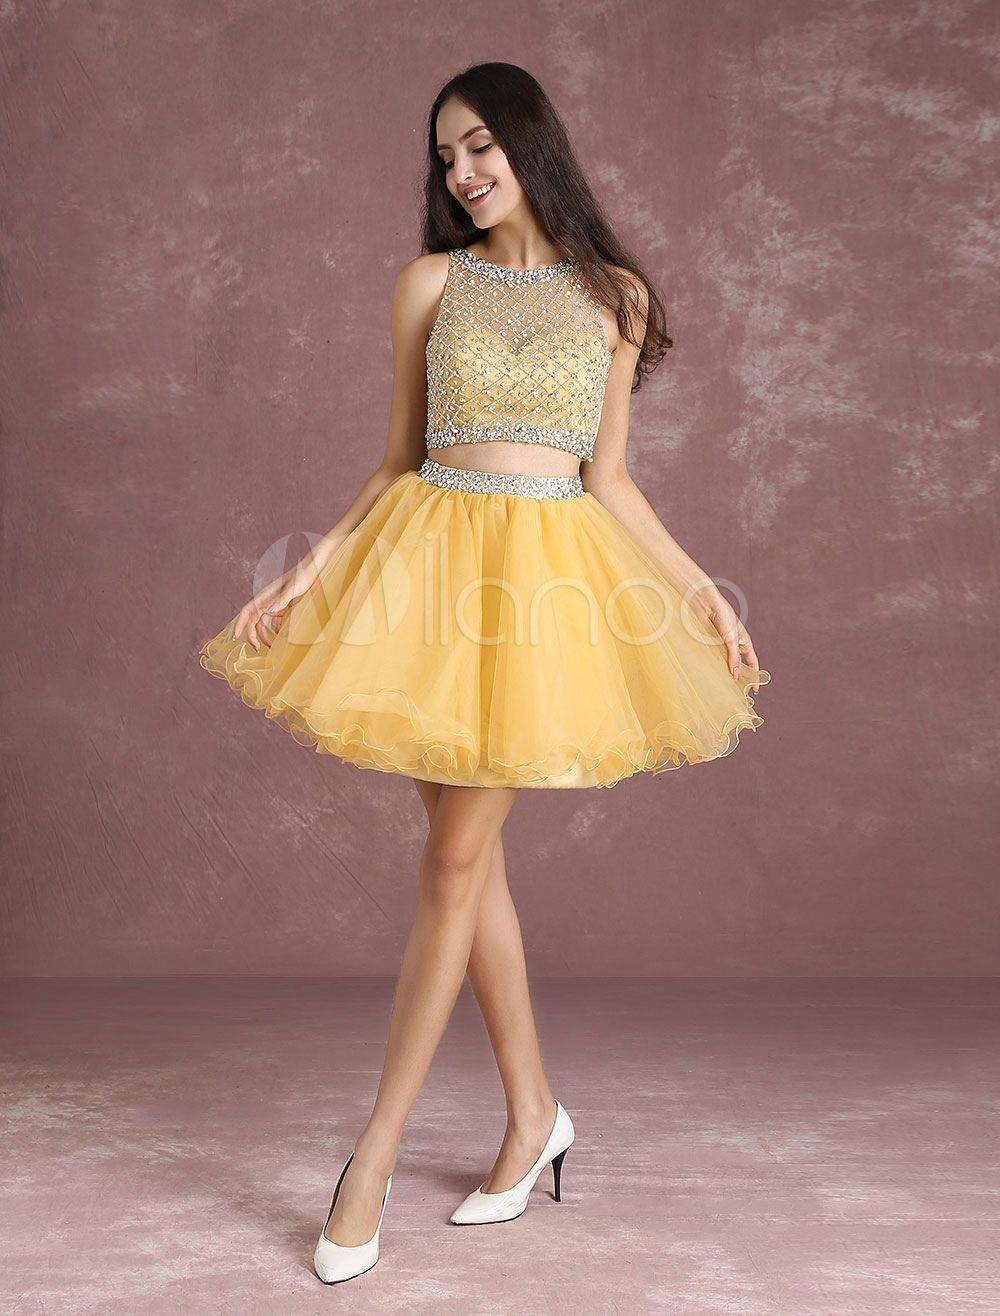 a89979856a97 Two Piece Homecoming Dresses Light Gold Short Prom Dresses Crop Top Tulle  Illusion Beading A Line Mini Tutu Party Dress - Milanoo.com